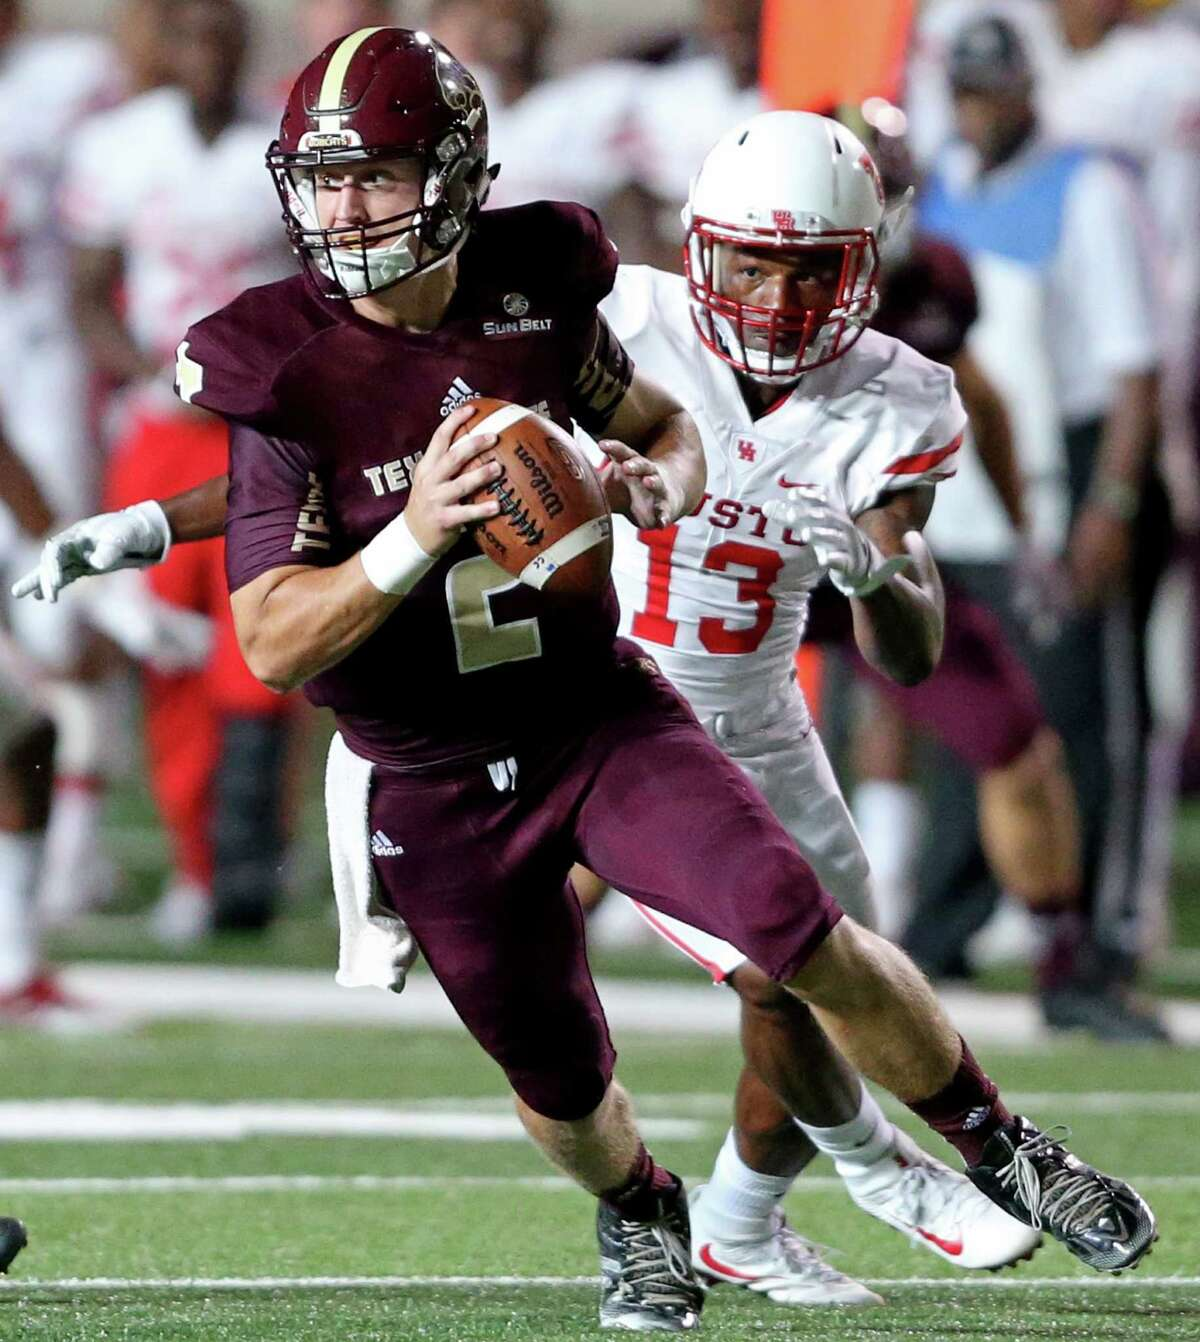 Texas State Bobcats quarterback Tyler Jones looks for running room under pressure from Houston Cougars cornerback Joeal Williams during second half action Saturday Sept. 24, 2016 at Bobcat Stadium in San Marcos, Tx. The Houston Cougars won 64-3.